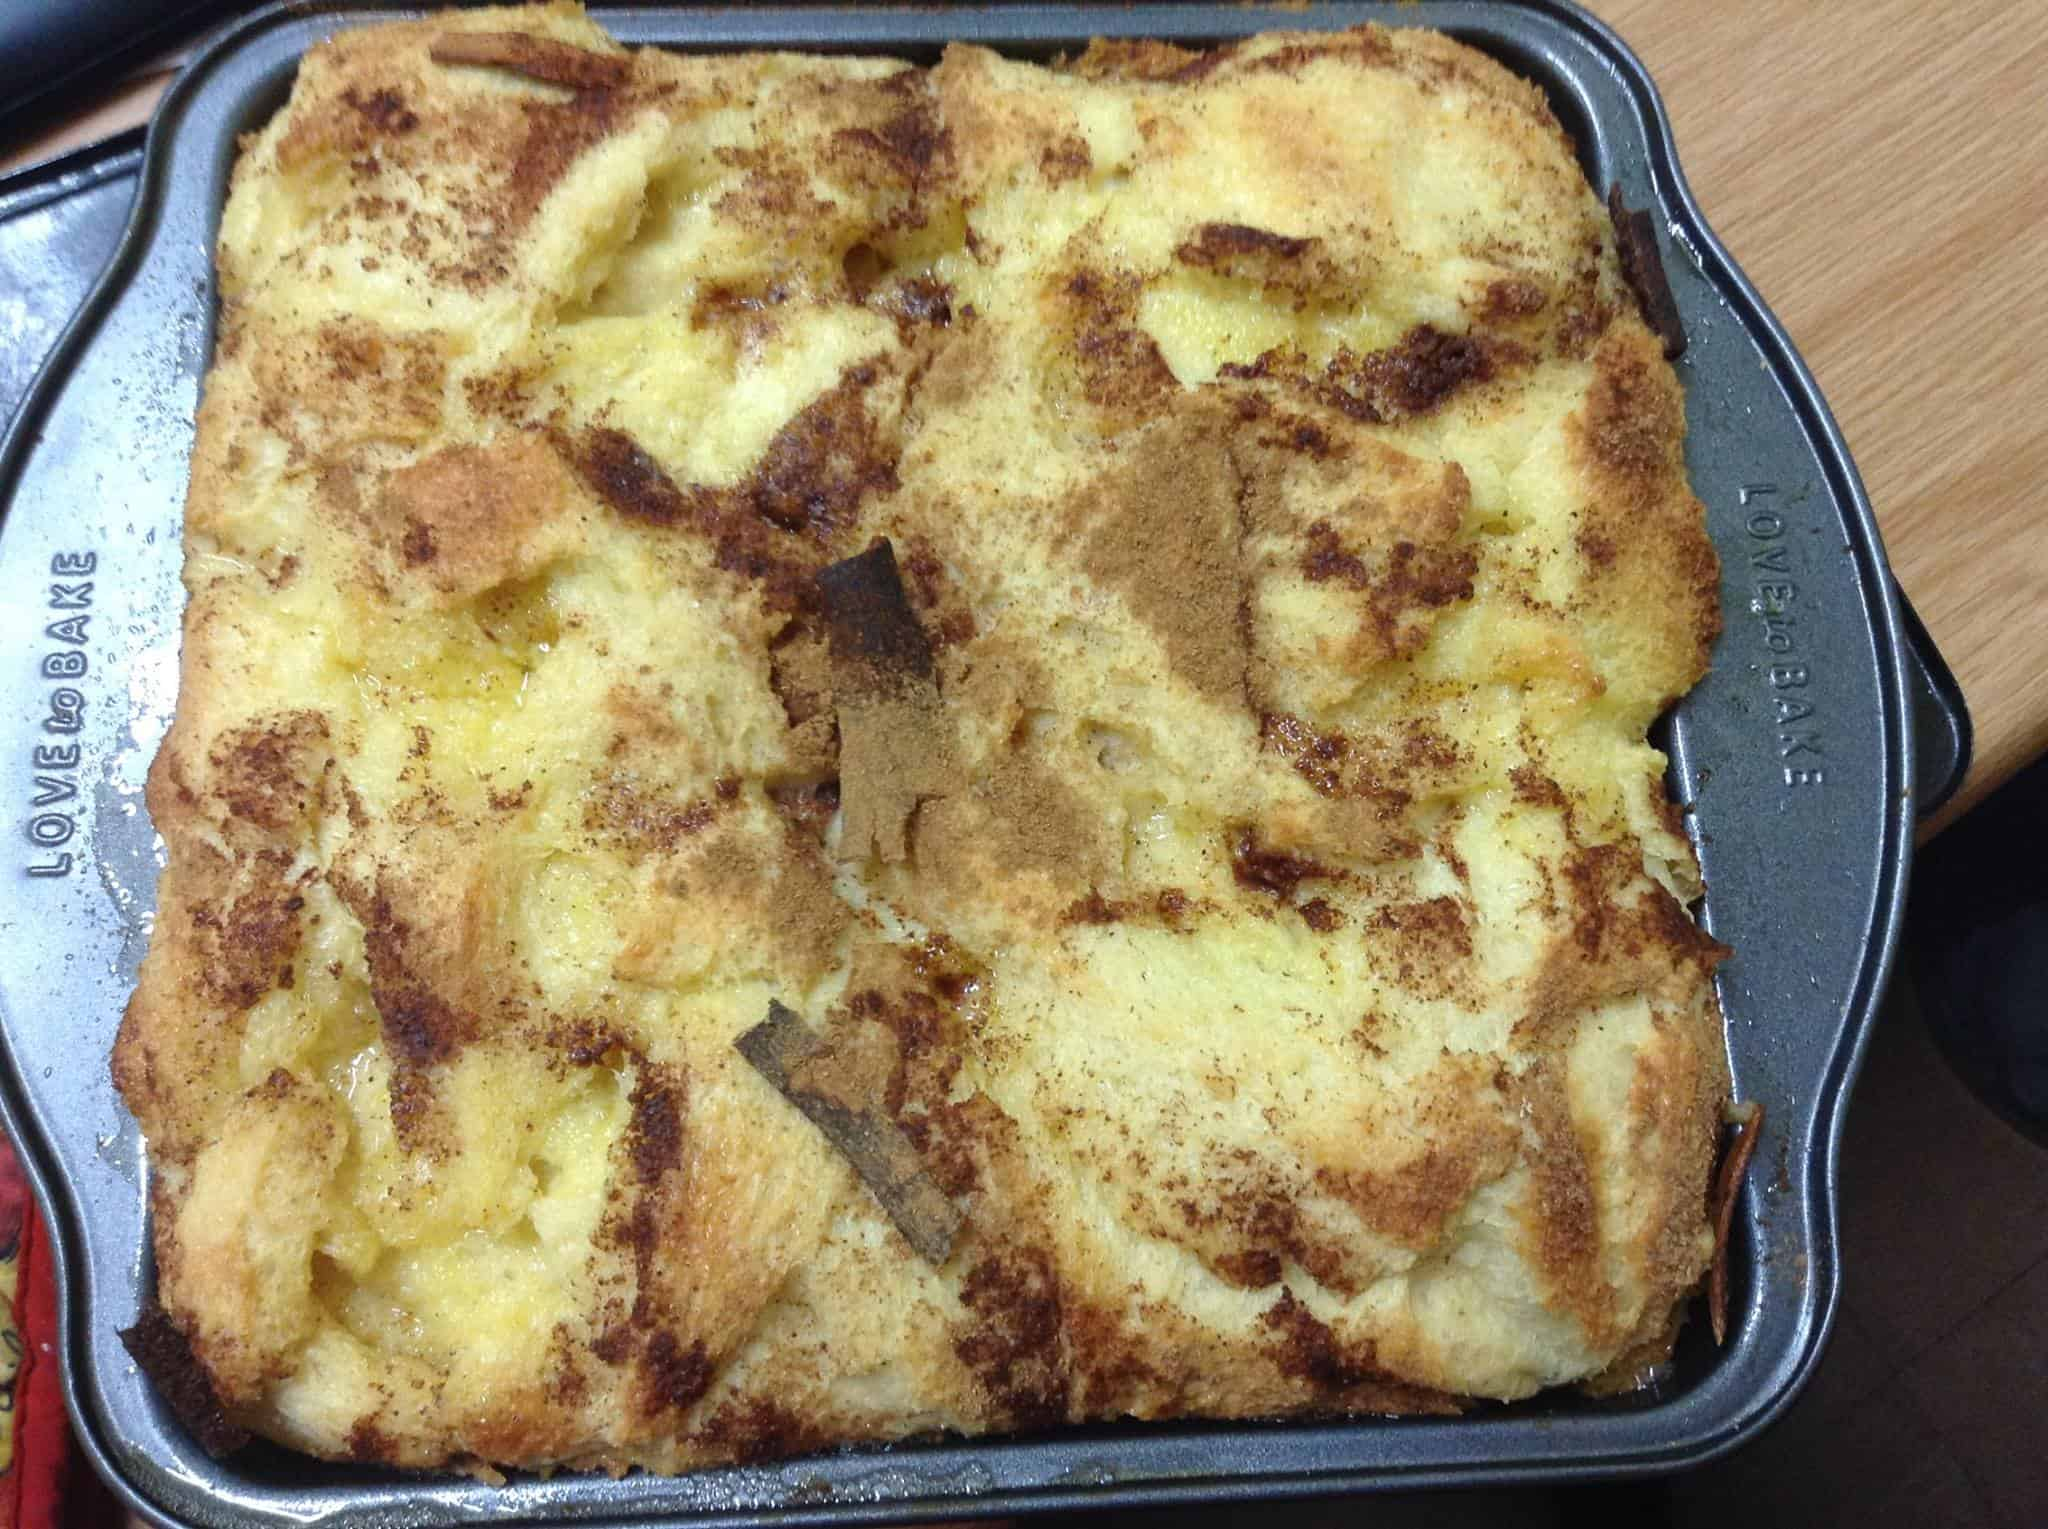 Bread pudding and homemade custard for dessert1